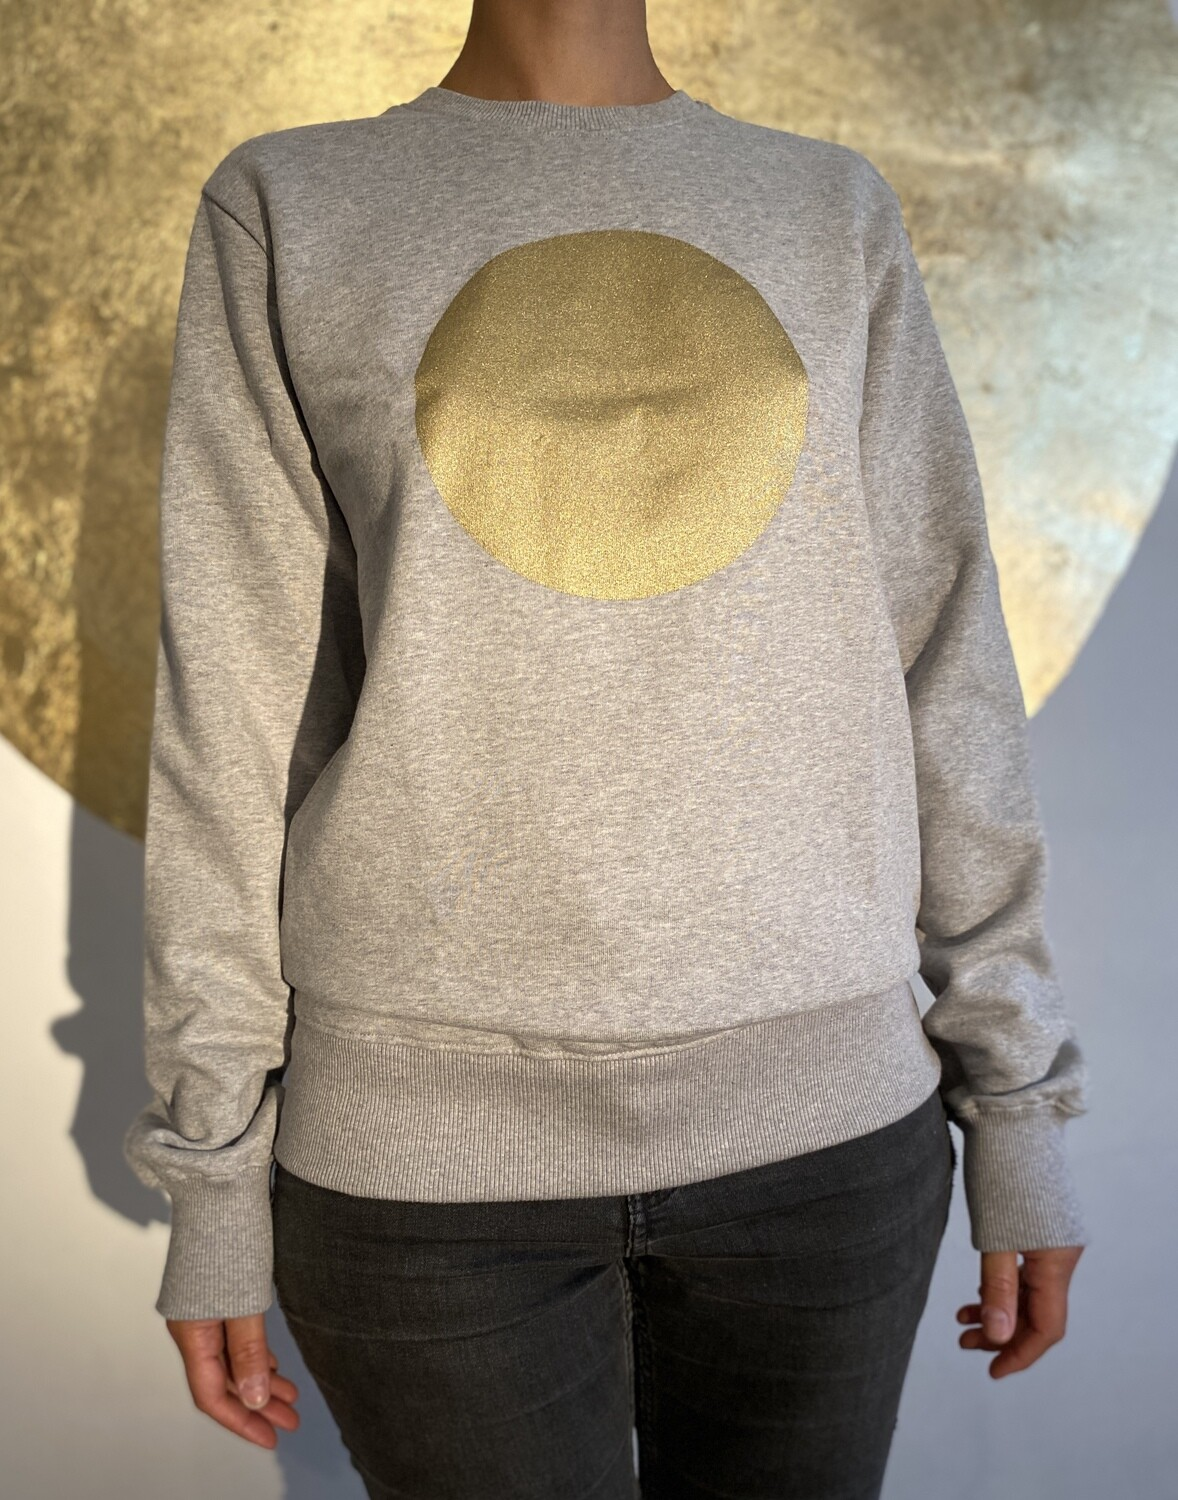 BE GOLDEN by The Lovers, Sweater - grau / Druck gold